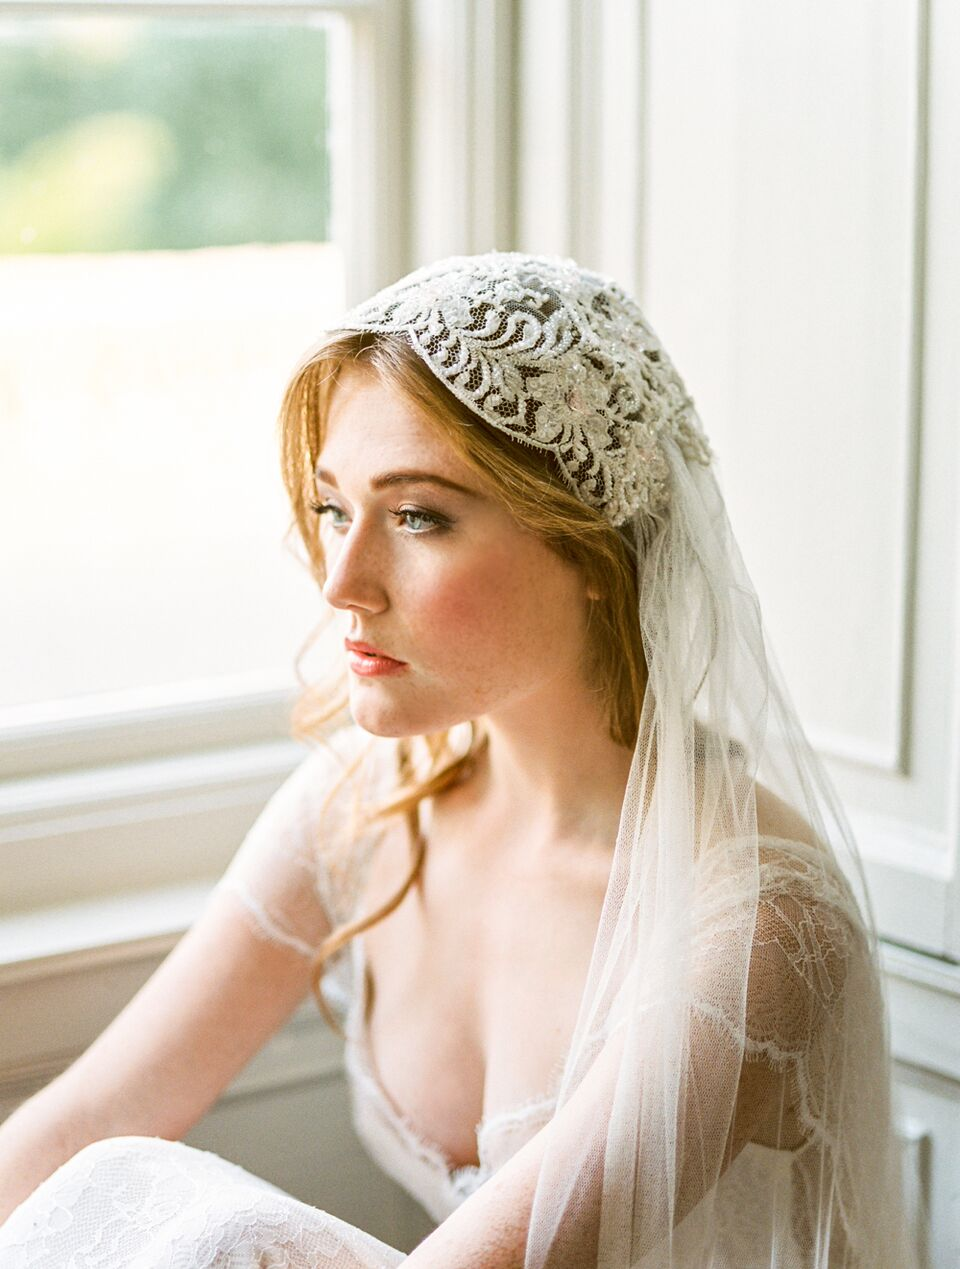 Gloster-House-wedding-inspiration-Ireland-Lisa-O'Dwyer-Photography-309_preview.jpeg